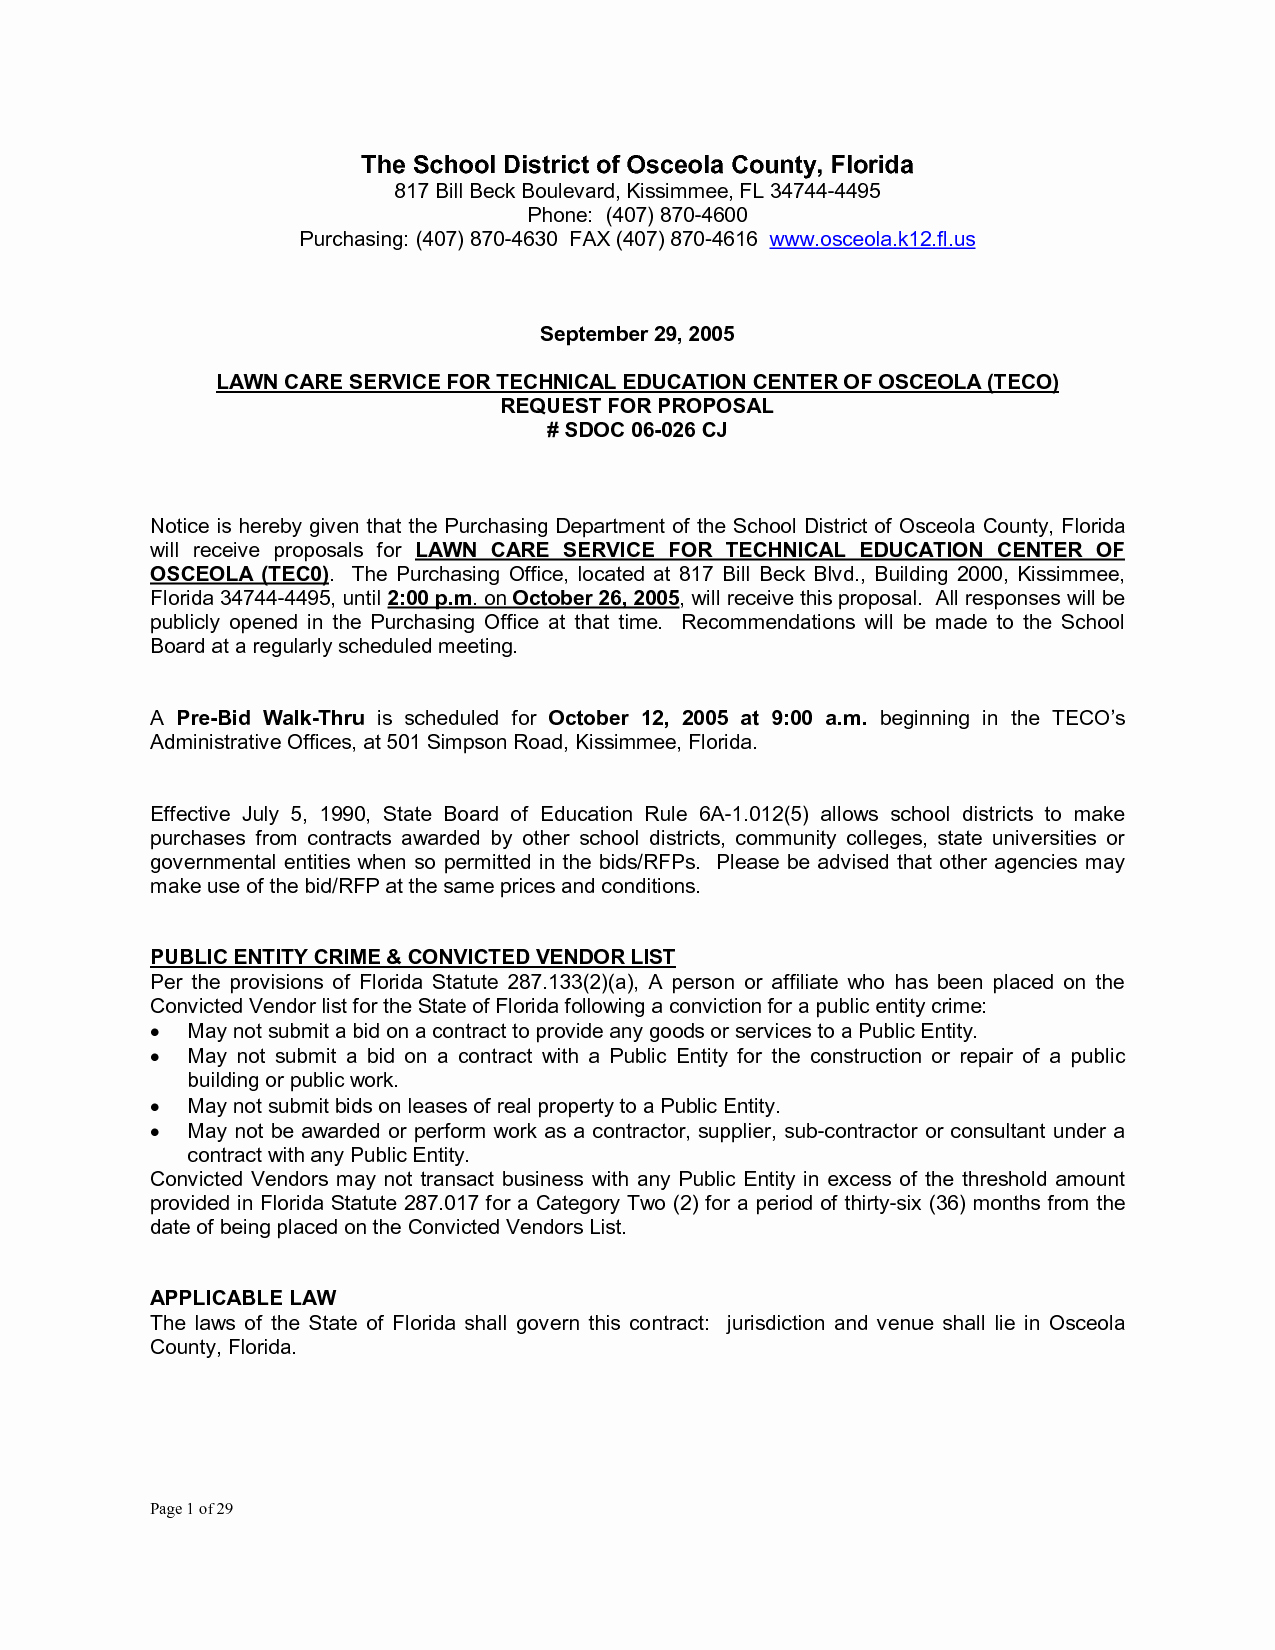 Commercial Lawn Care Bid Template New Bid Proposal Letter Mughals